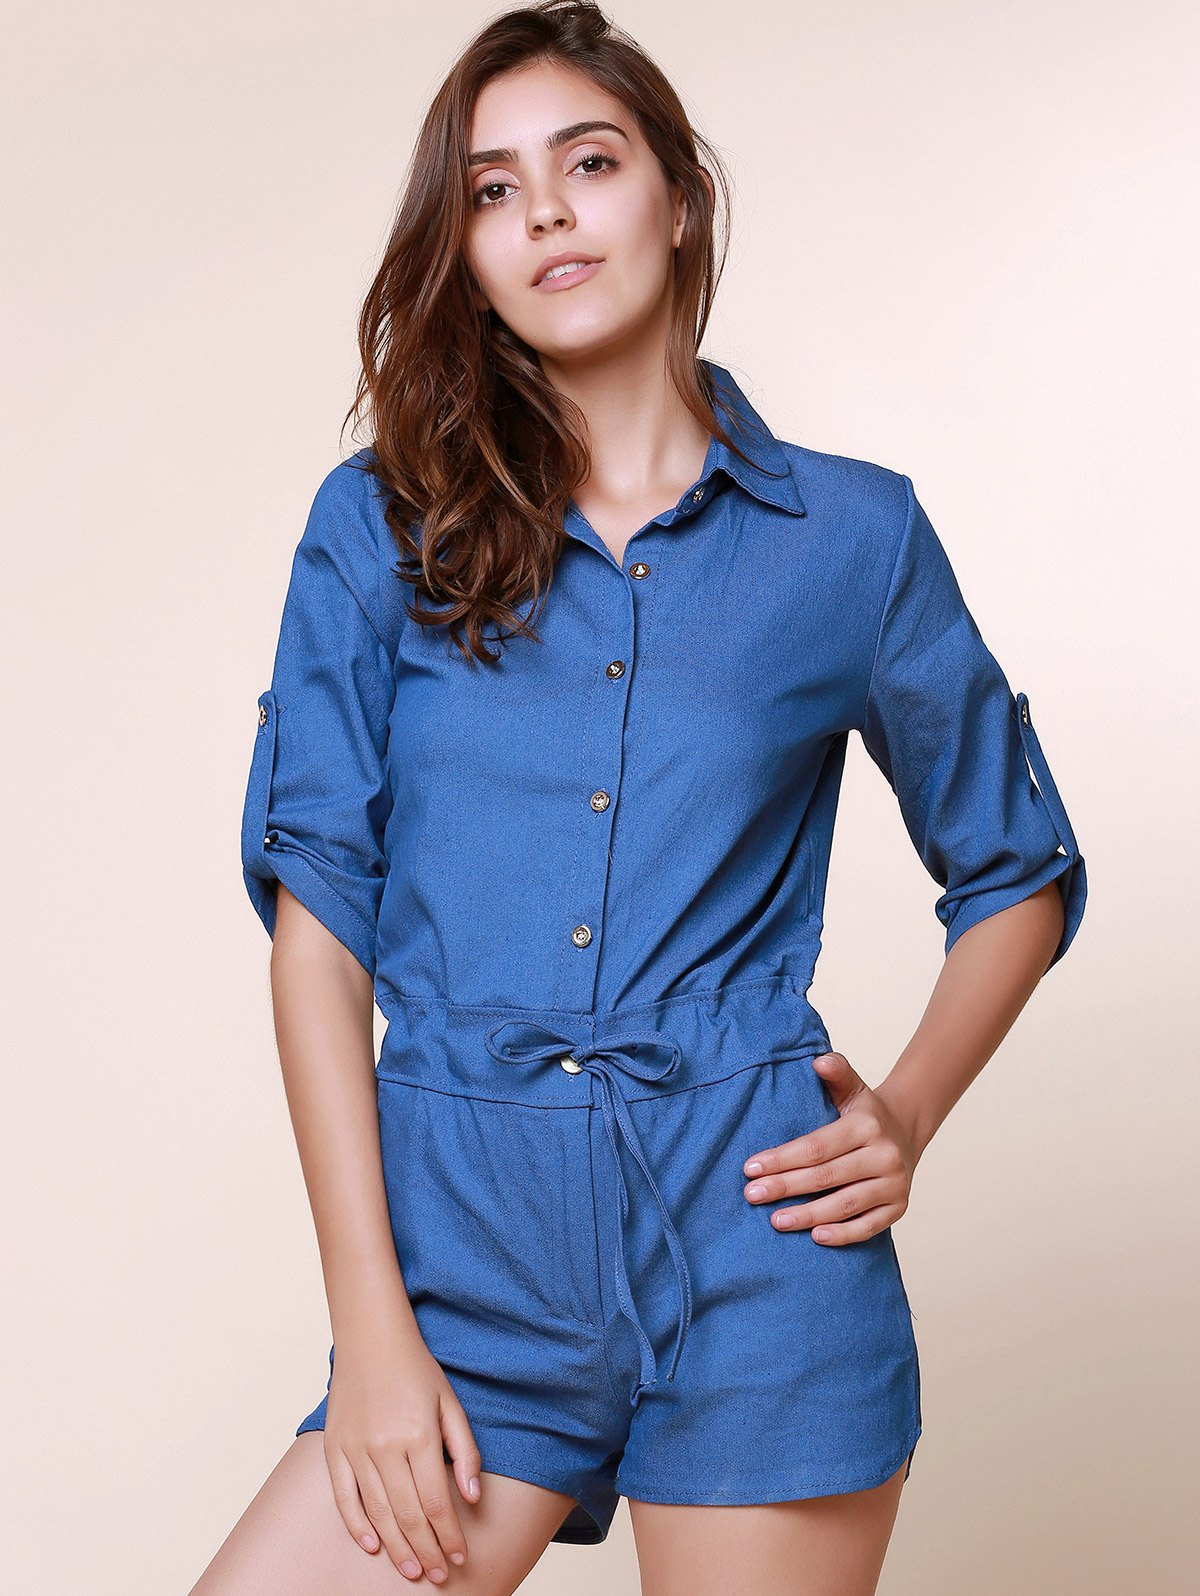 Vintage Shirt Collar Pure Color 3/4 Sleeve Lace-Up Jeans Romper For Women - AS THE PICTURE S